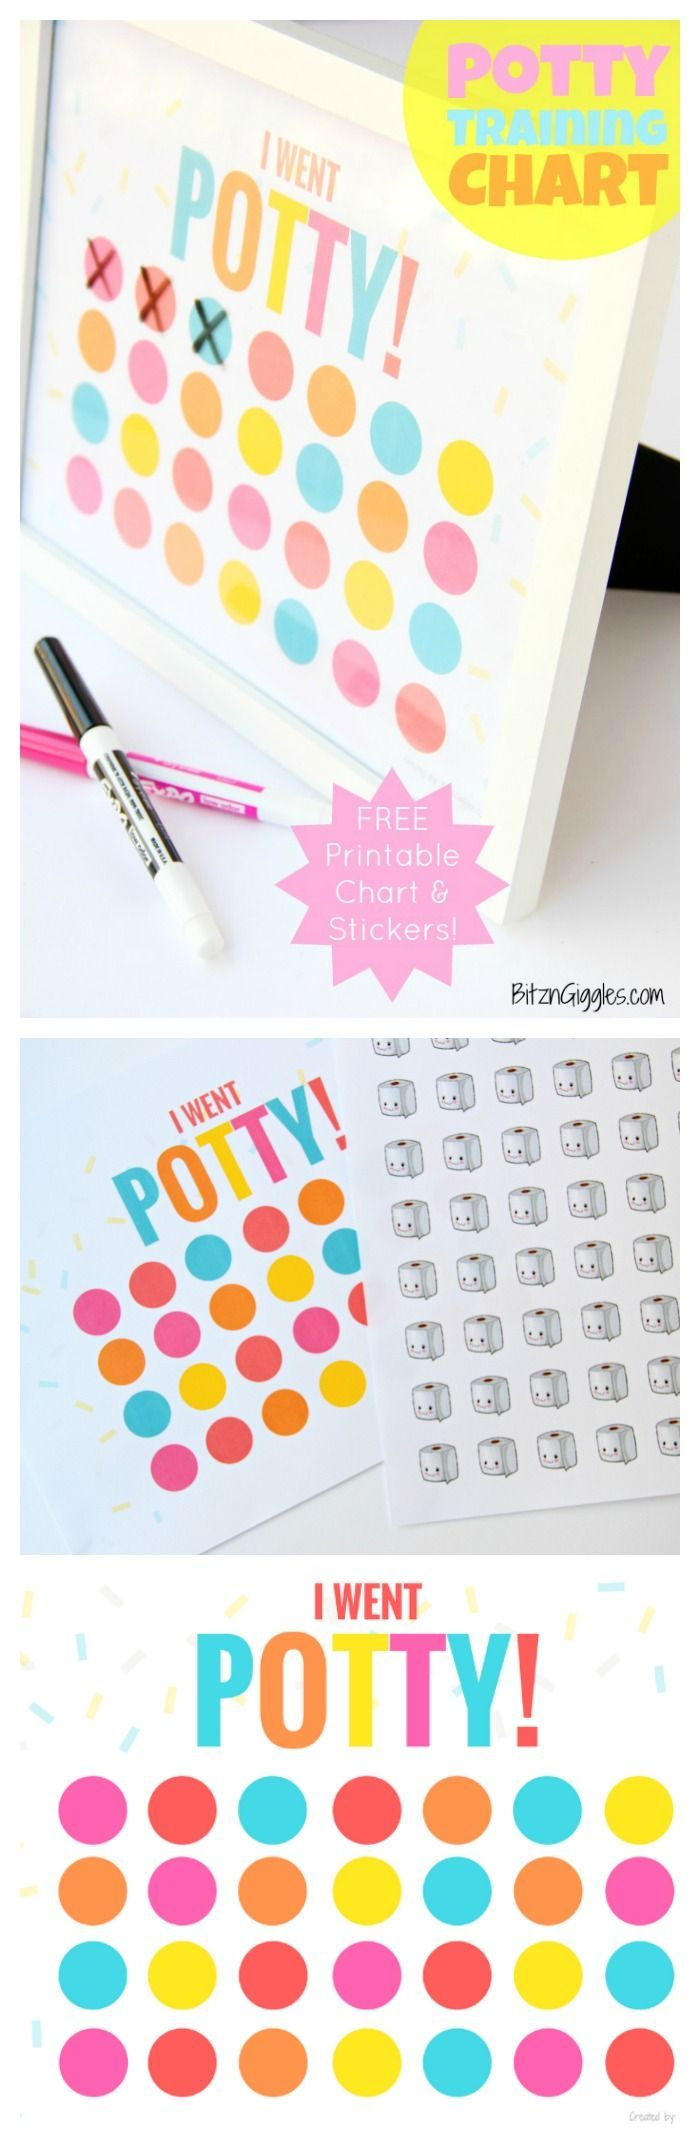 best ideas about printable potty chart potty printable potty training chart